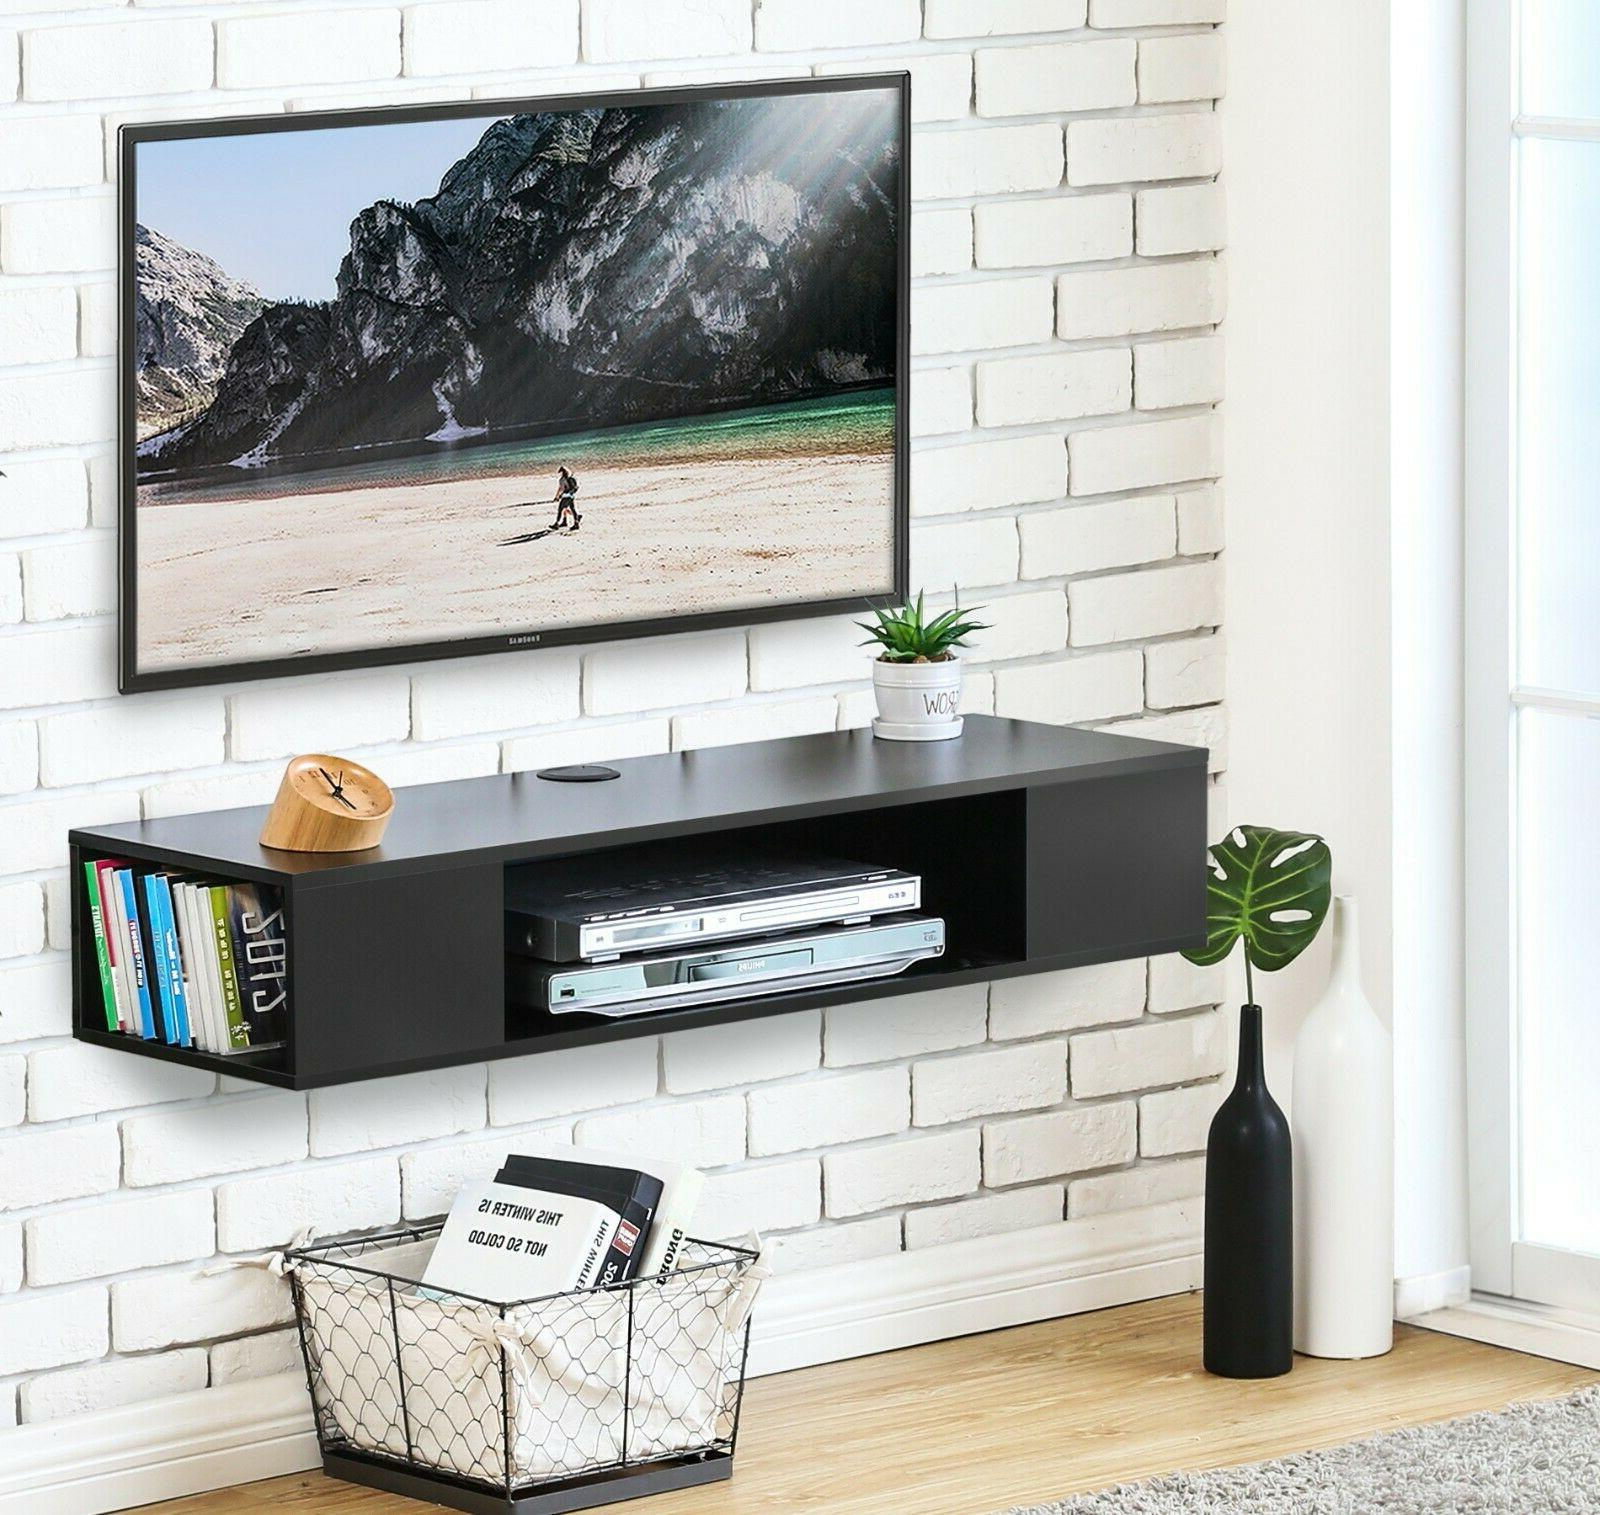 Wall Mount TV Stand Shelves